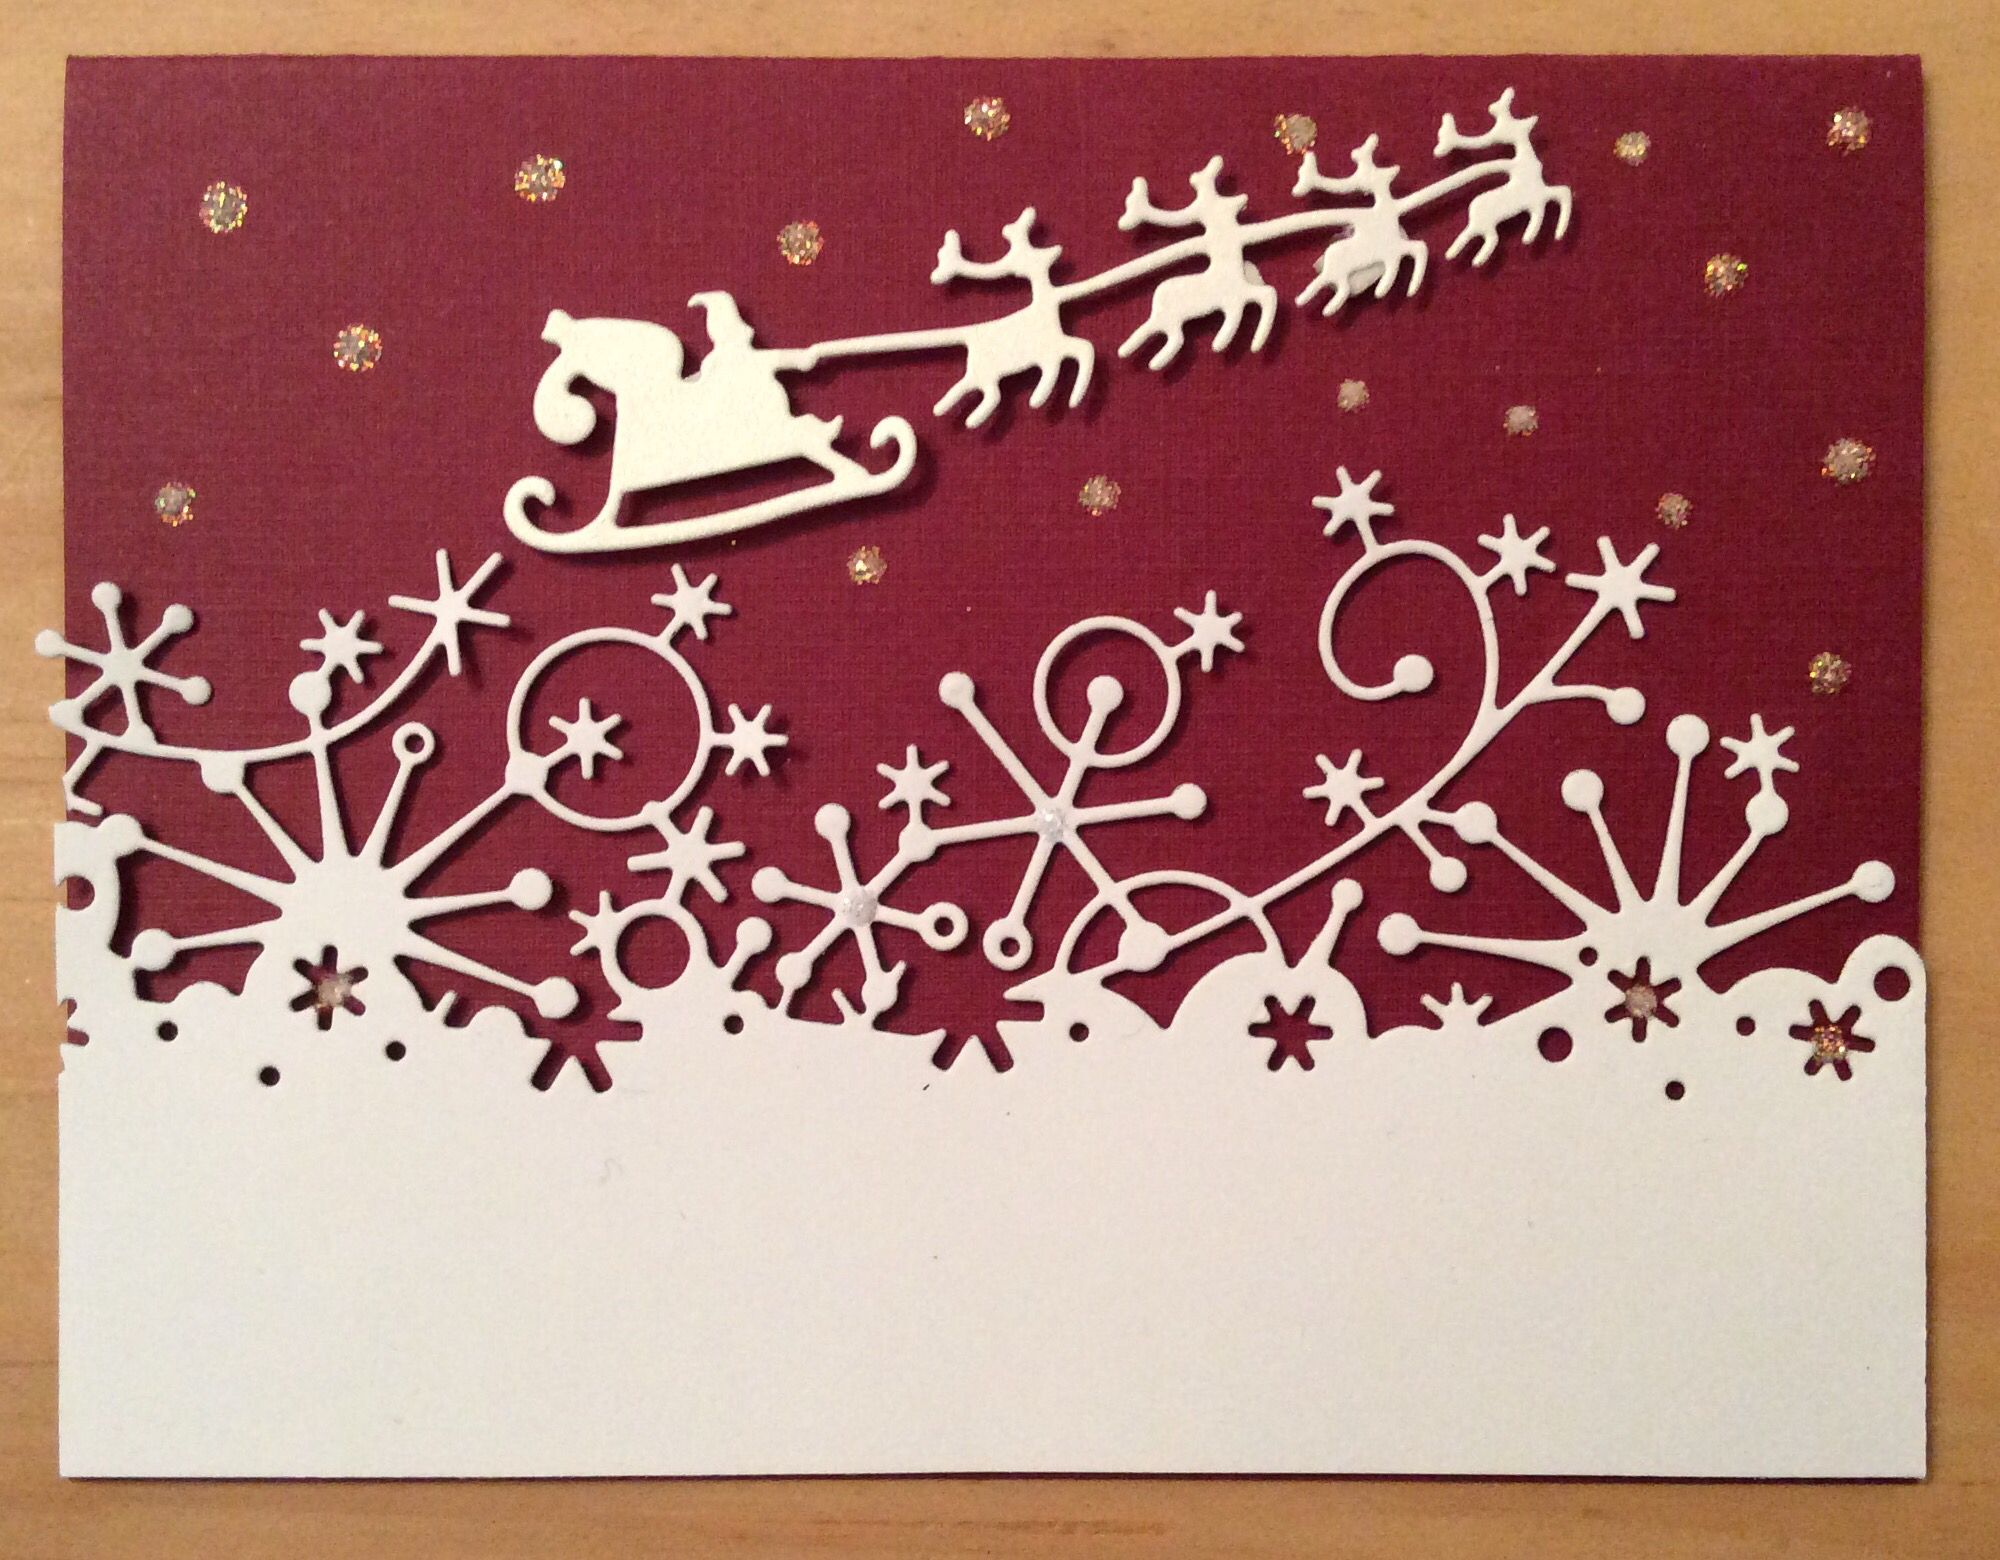 Frostyville border by Memory Box | Homemade christmas ...